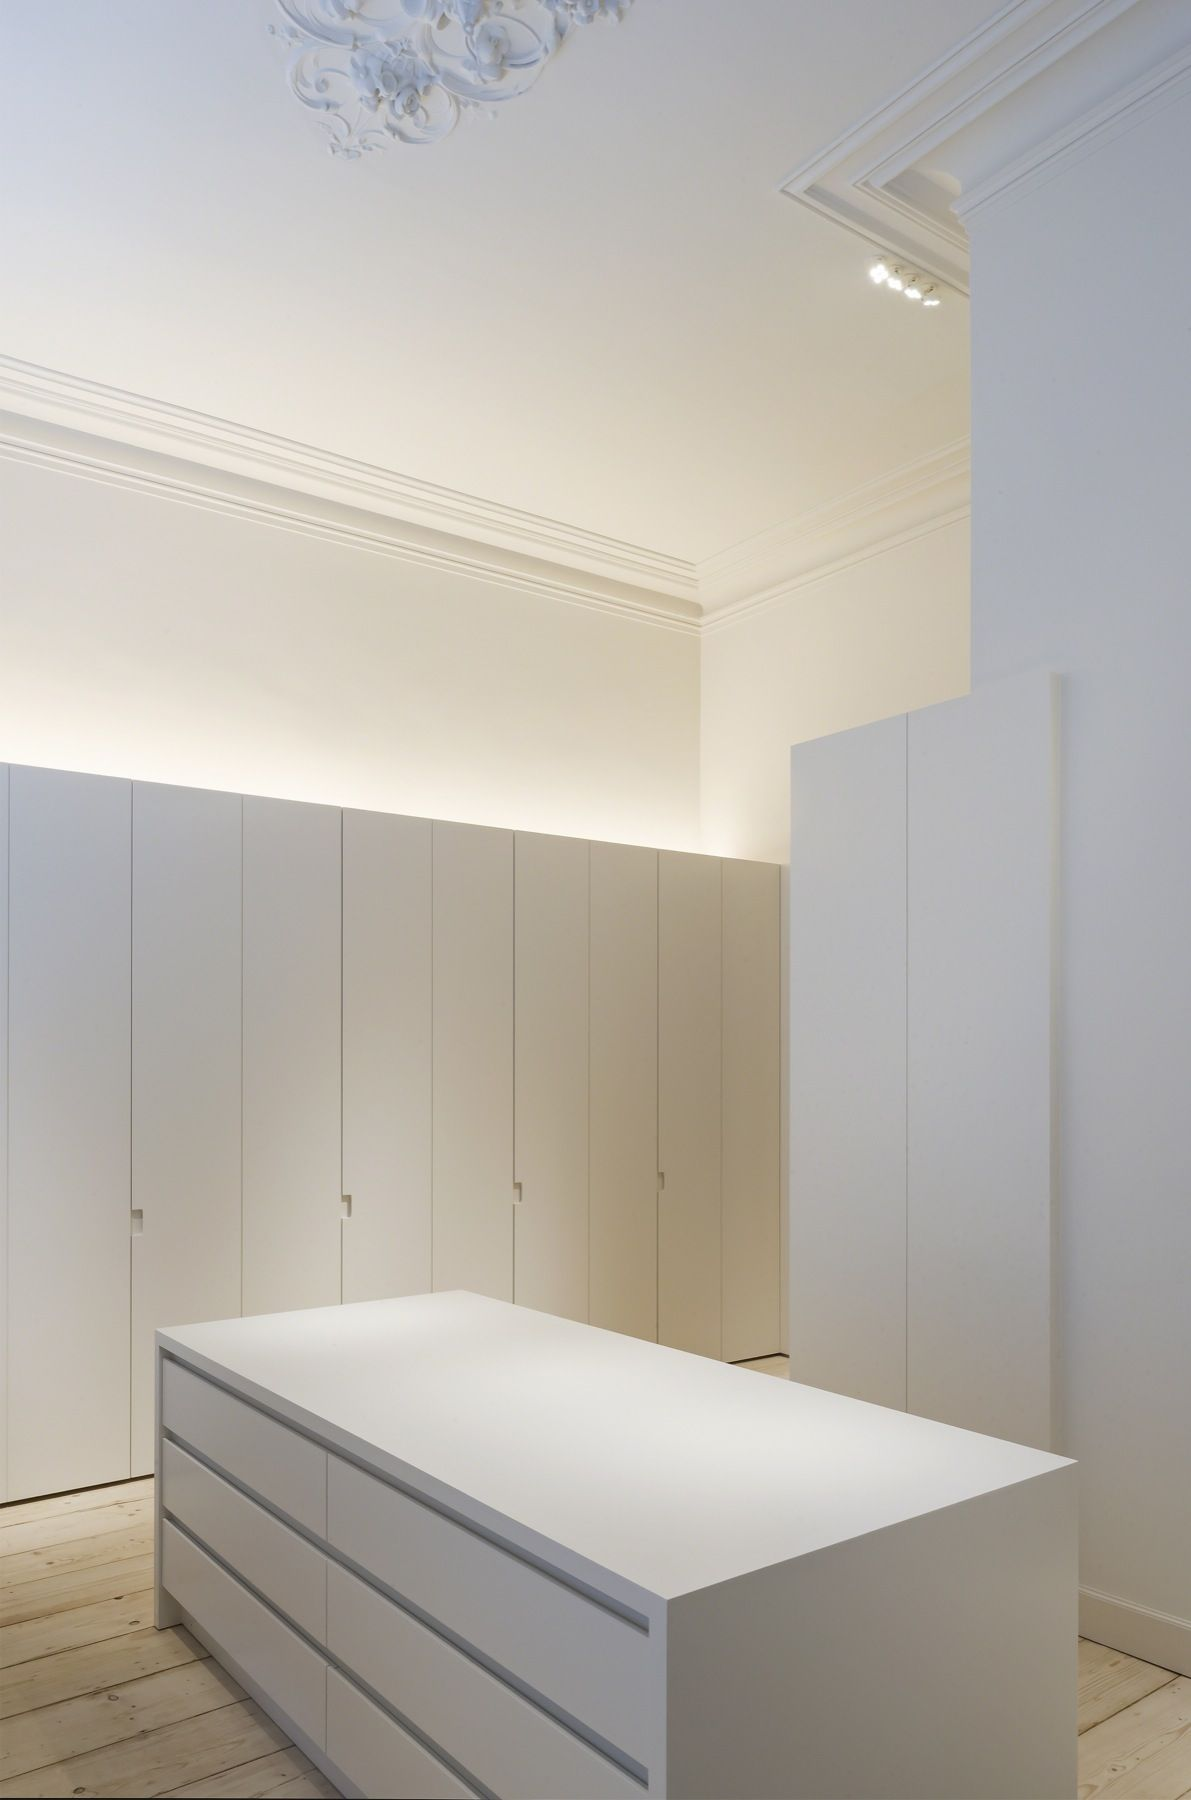 Hans verstuyft architecten interior design mostly for Minimalisme rangement